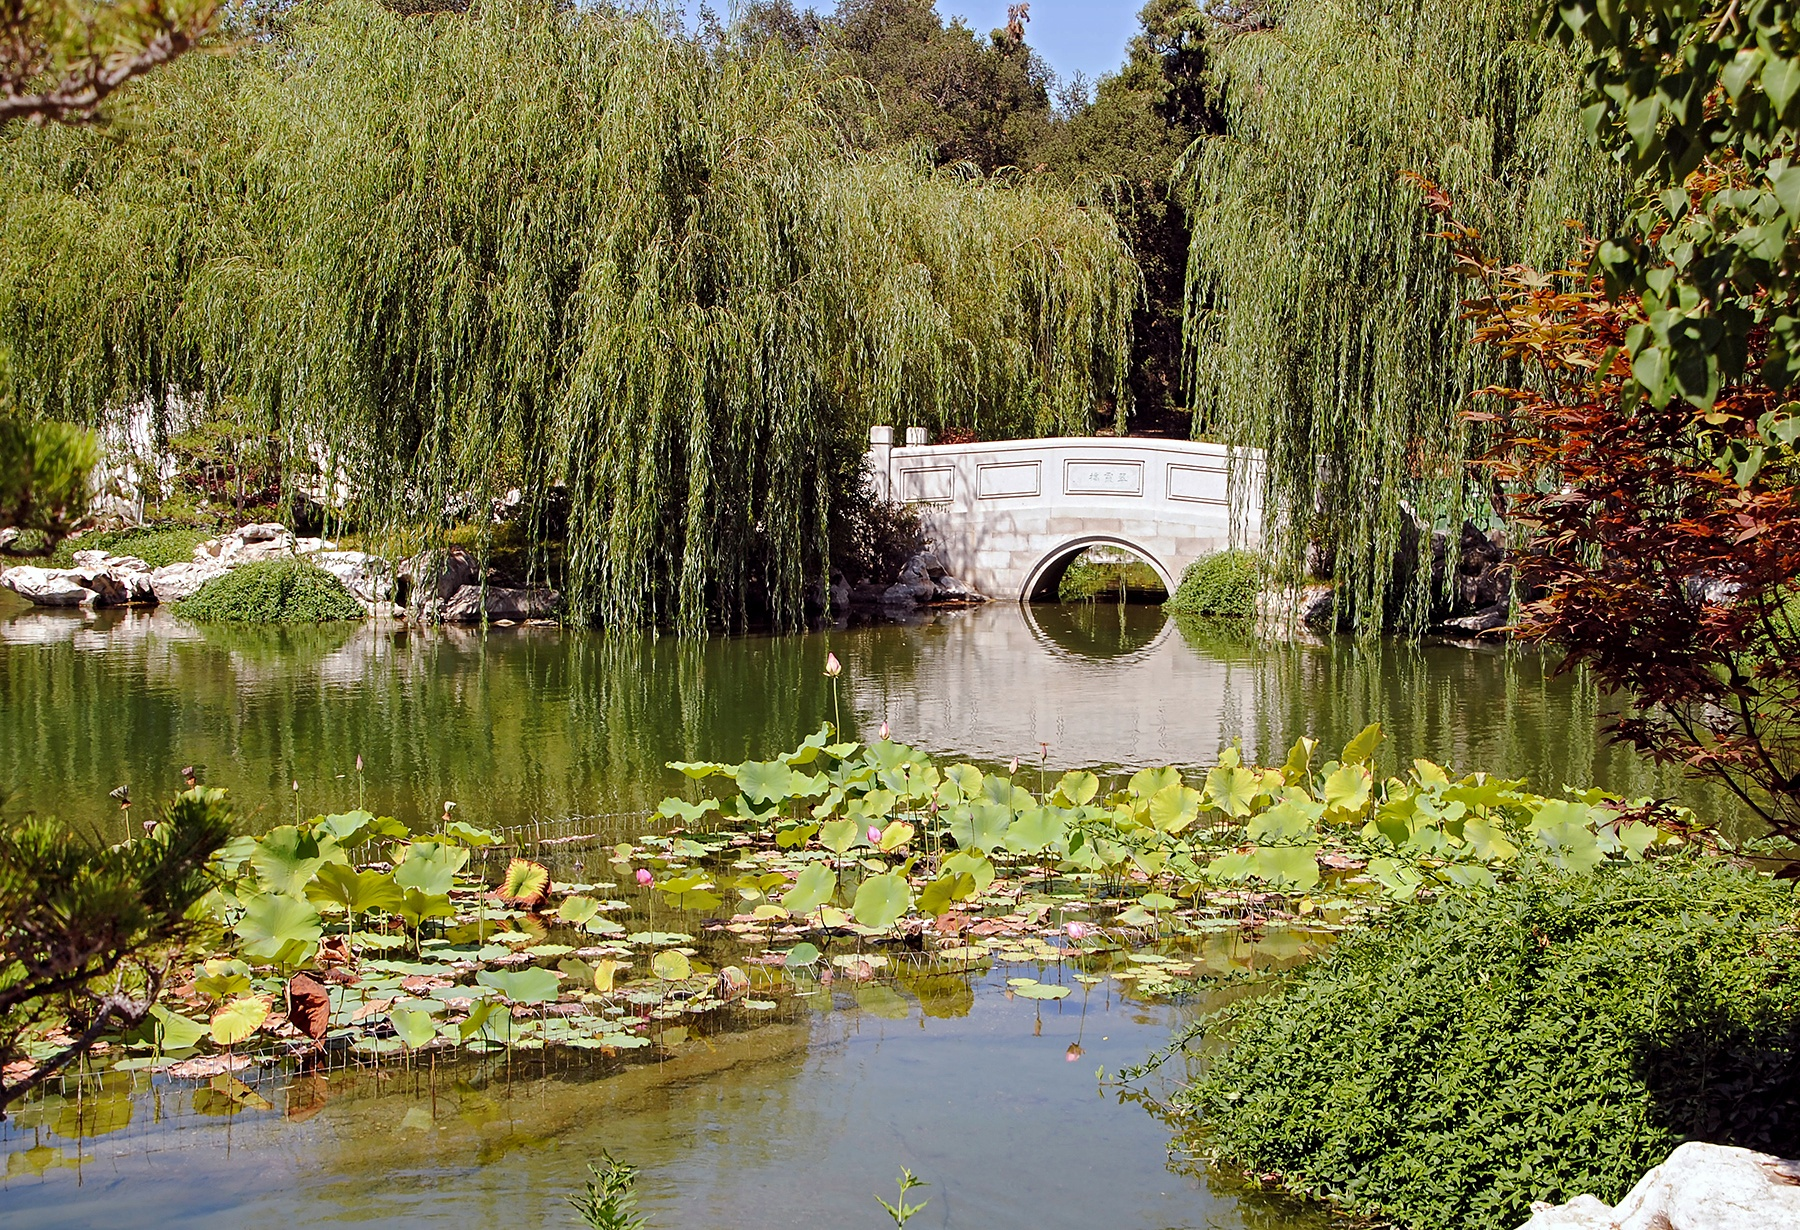 Photo in Landscape #pond #bridge #water #lillypads #trees #weeping willow